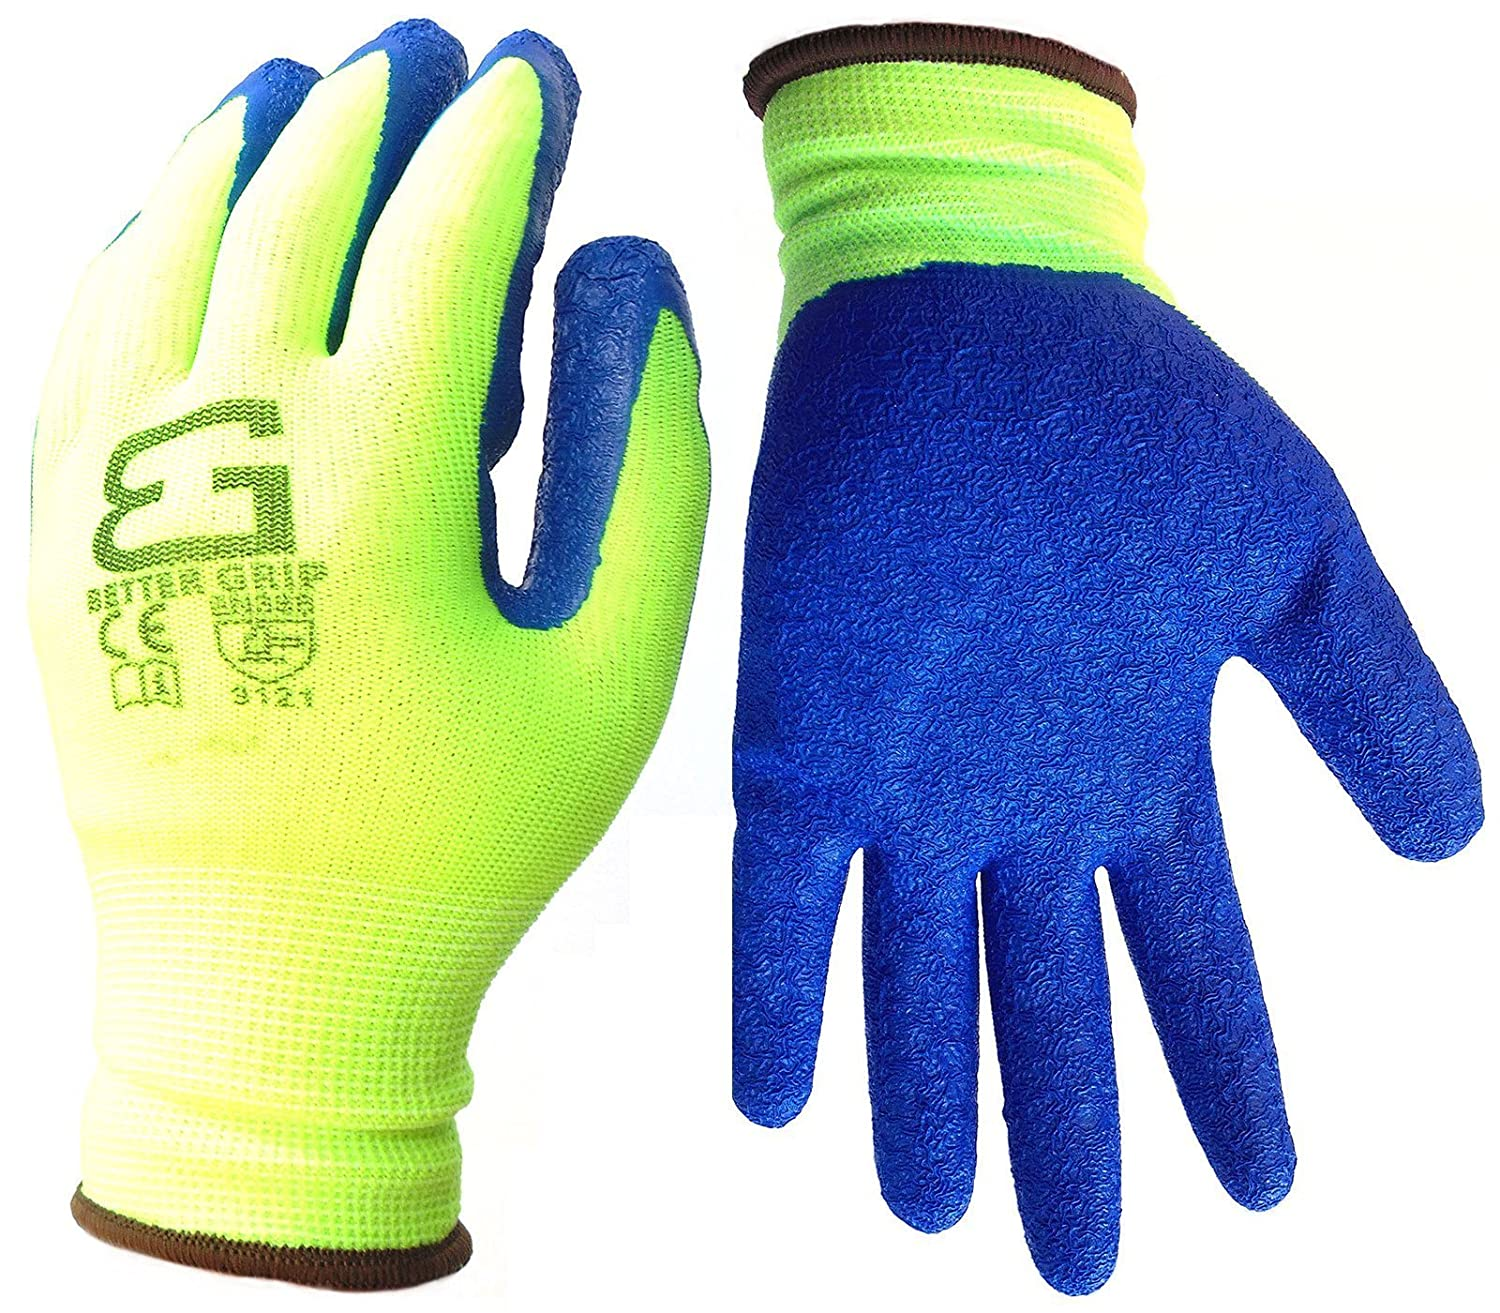 6 Pair Better Grip Nylon Glove with Textured Latex Coating Gripping Gloves Fluorescent Orange RK Industries Group Inc BGSCL-OR-8 Medium Crinkle Finished